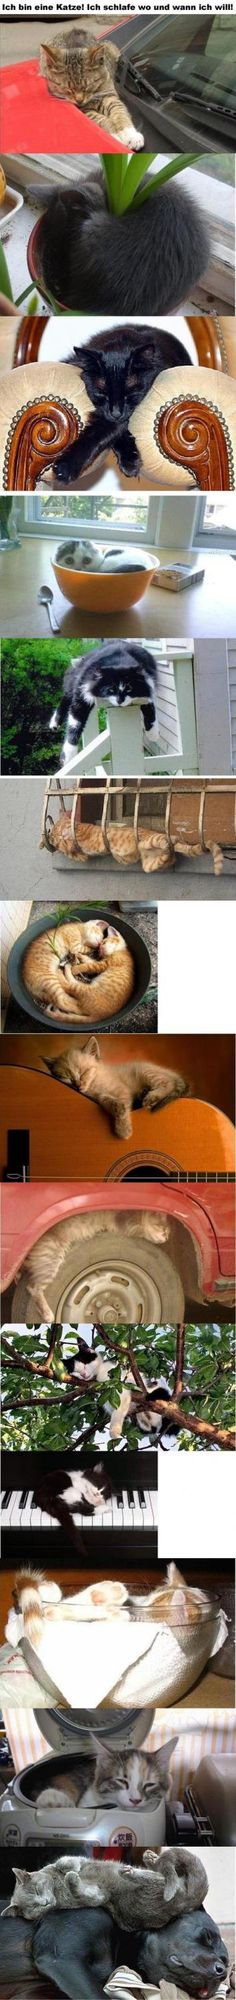 "I...I don't know what the caption says, but the language for ""Squee!  Kittehs sleeping in silly places!"" is universal."